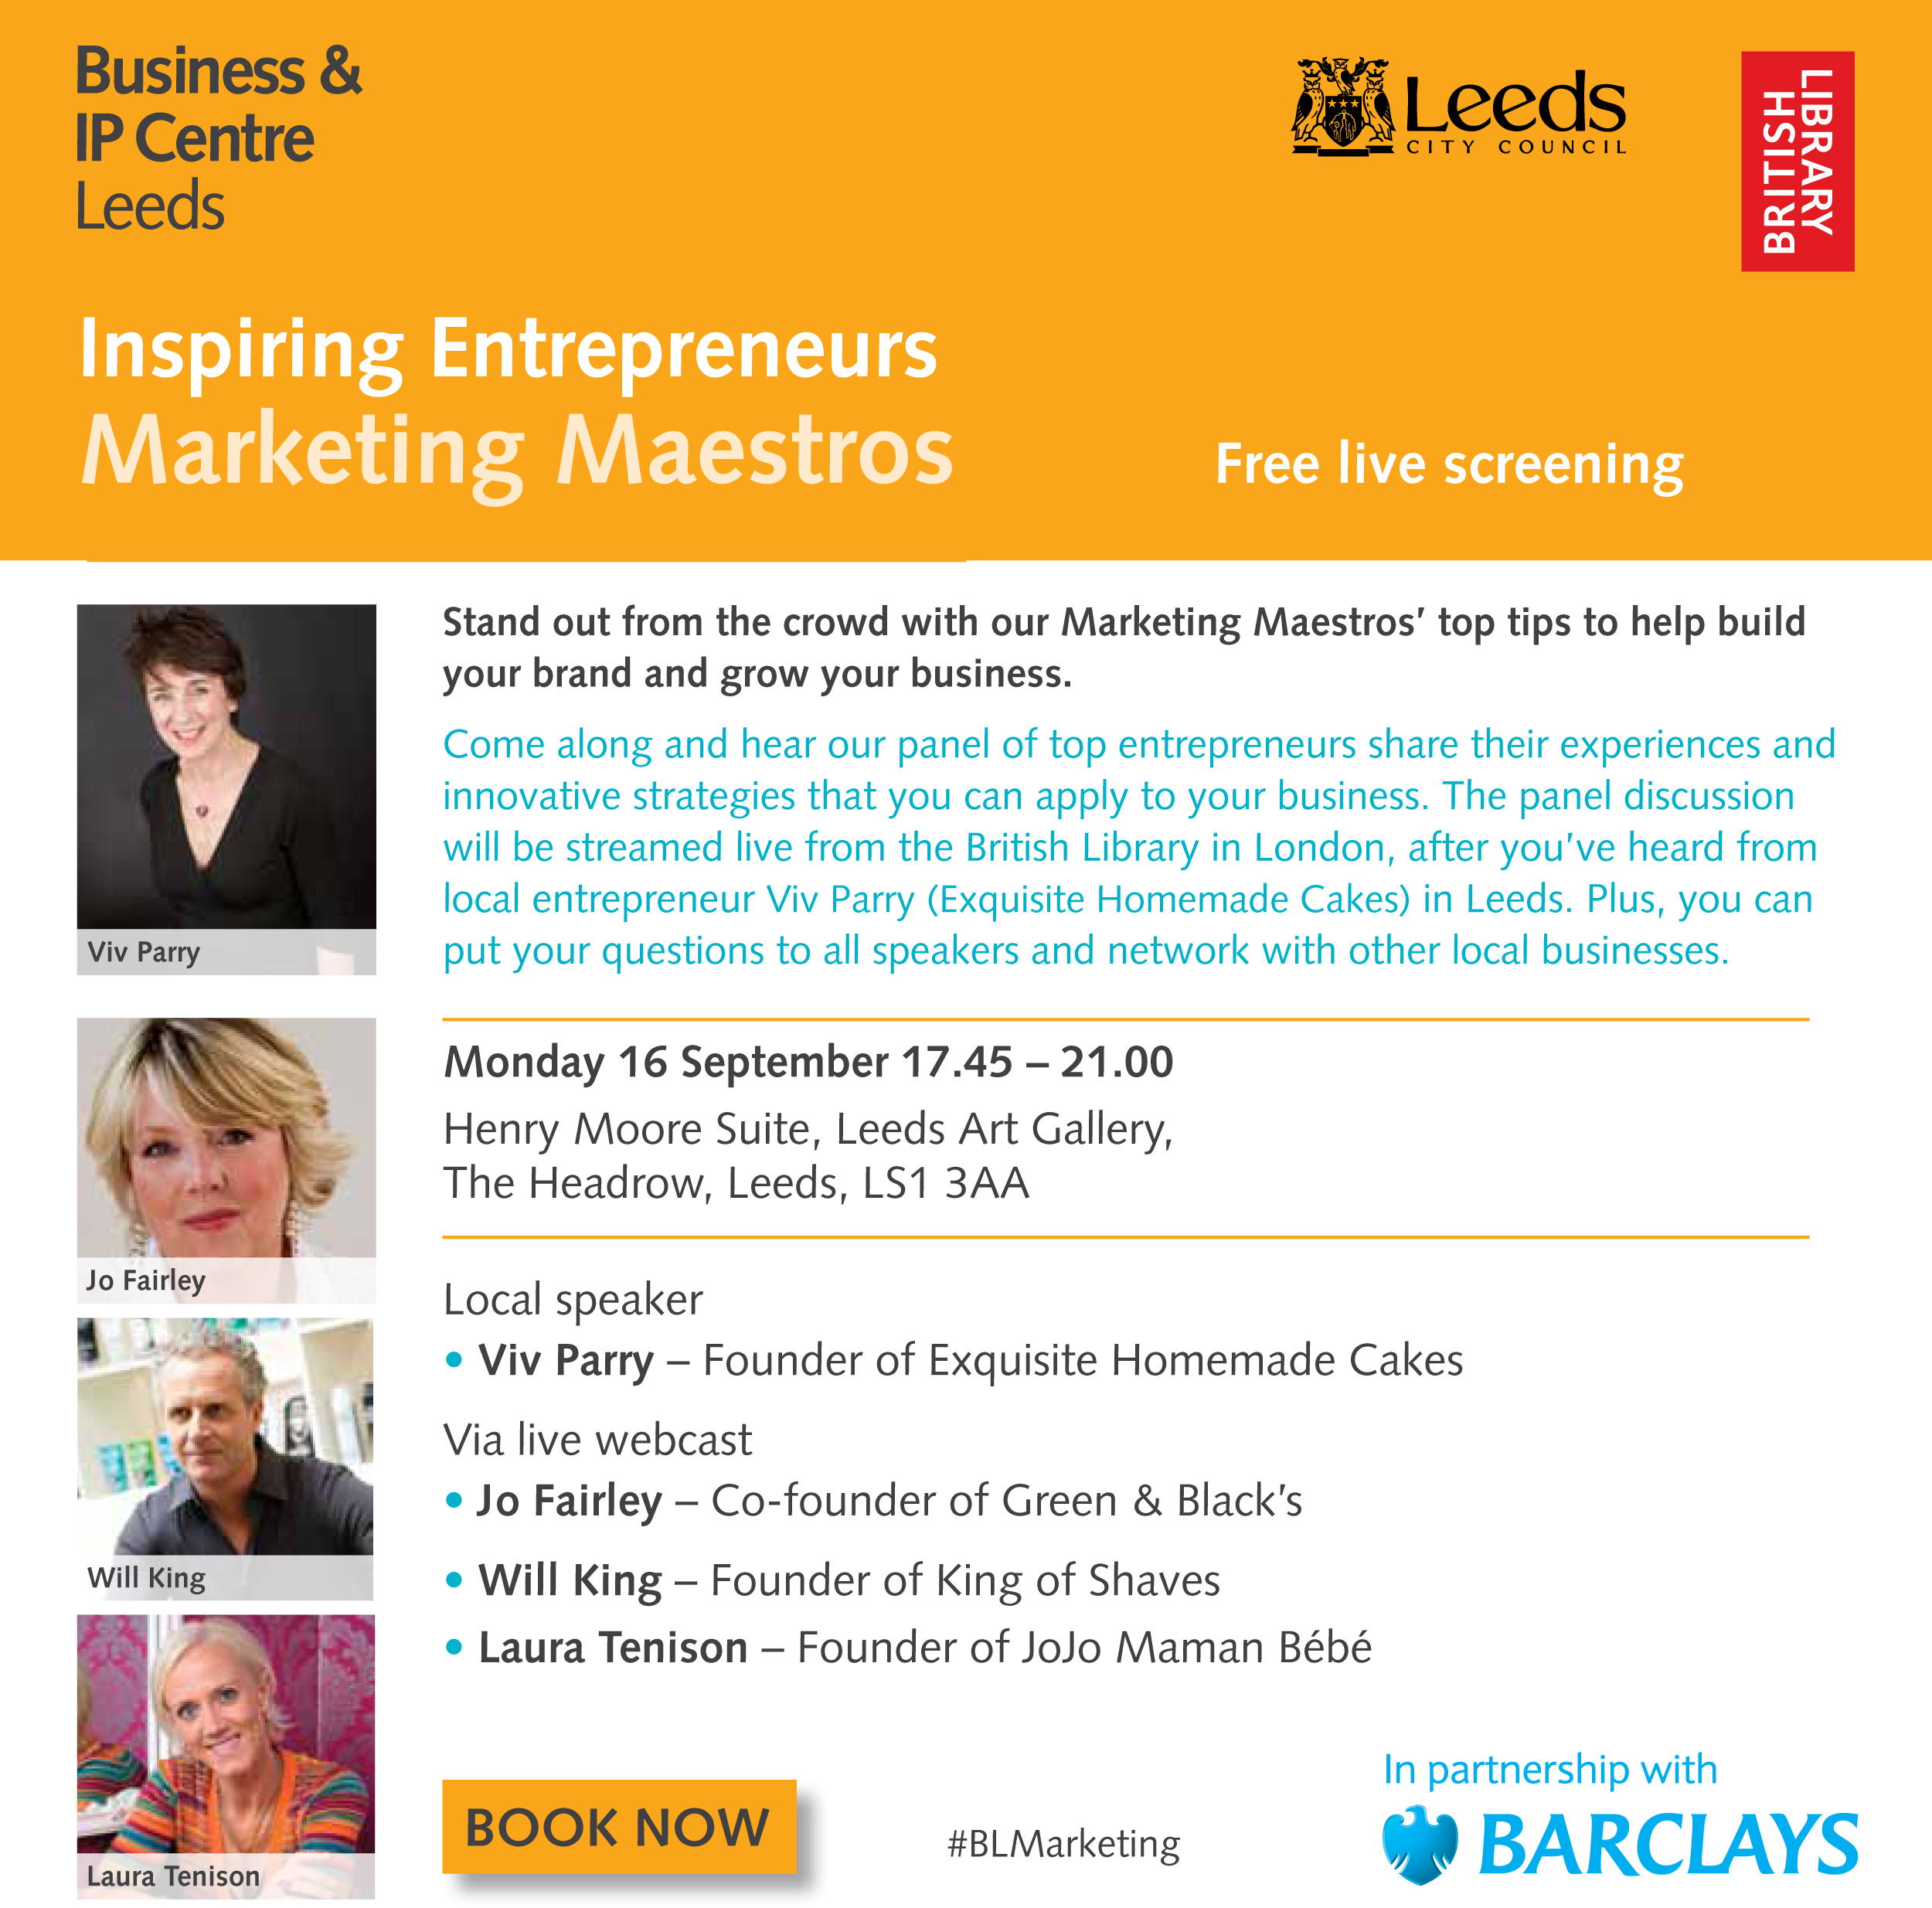 Inspiring Entrepreneurs: Marketing Maestros, Henry Moore Suite, Leeds Art Gallery - 16 September 2013